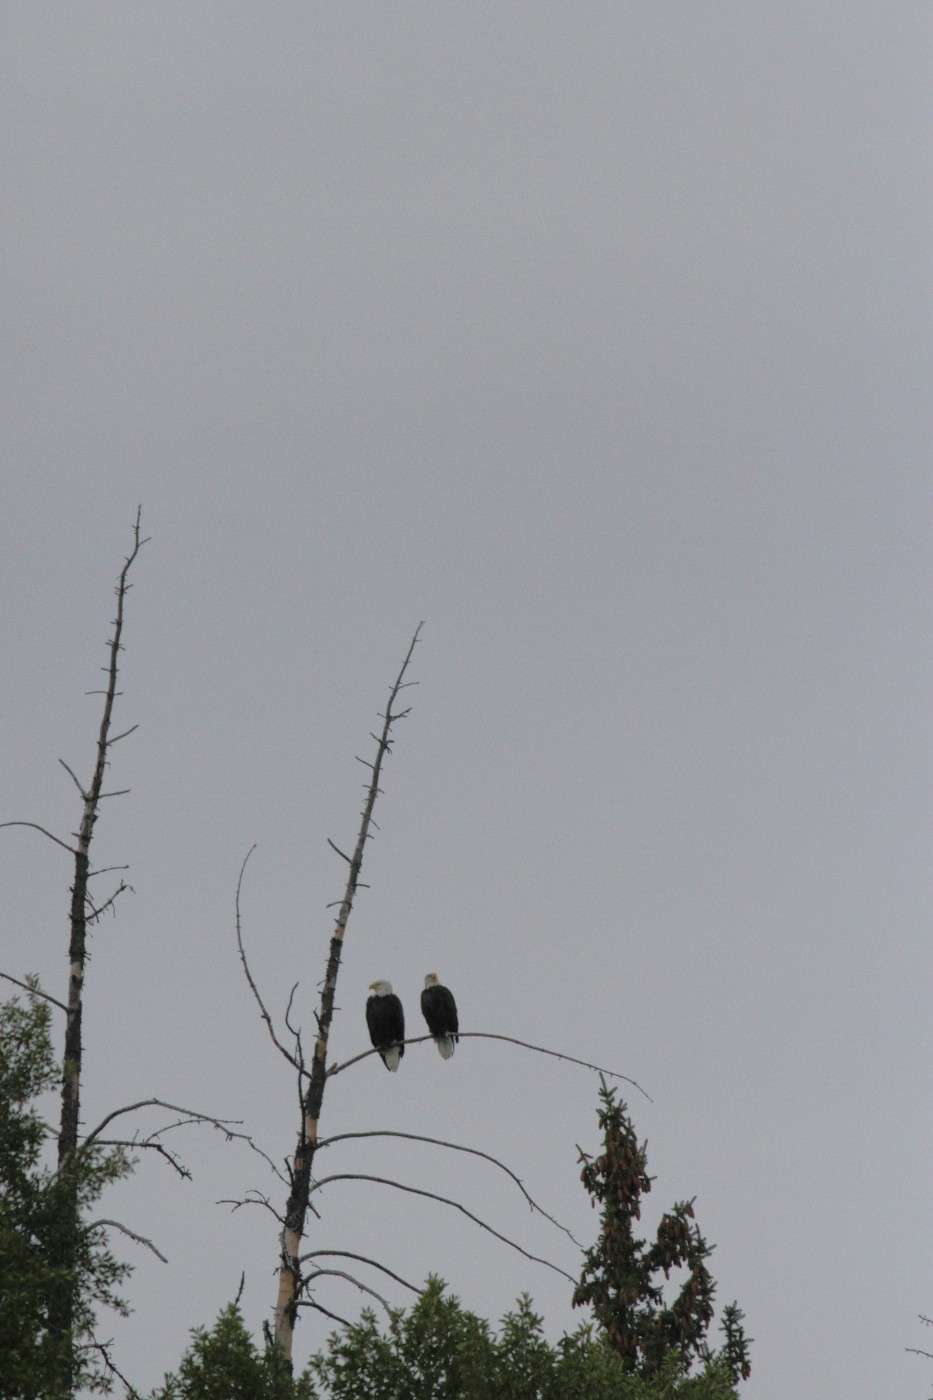 bald eagles grand tetons national park author s szulecki joshua